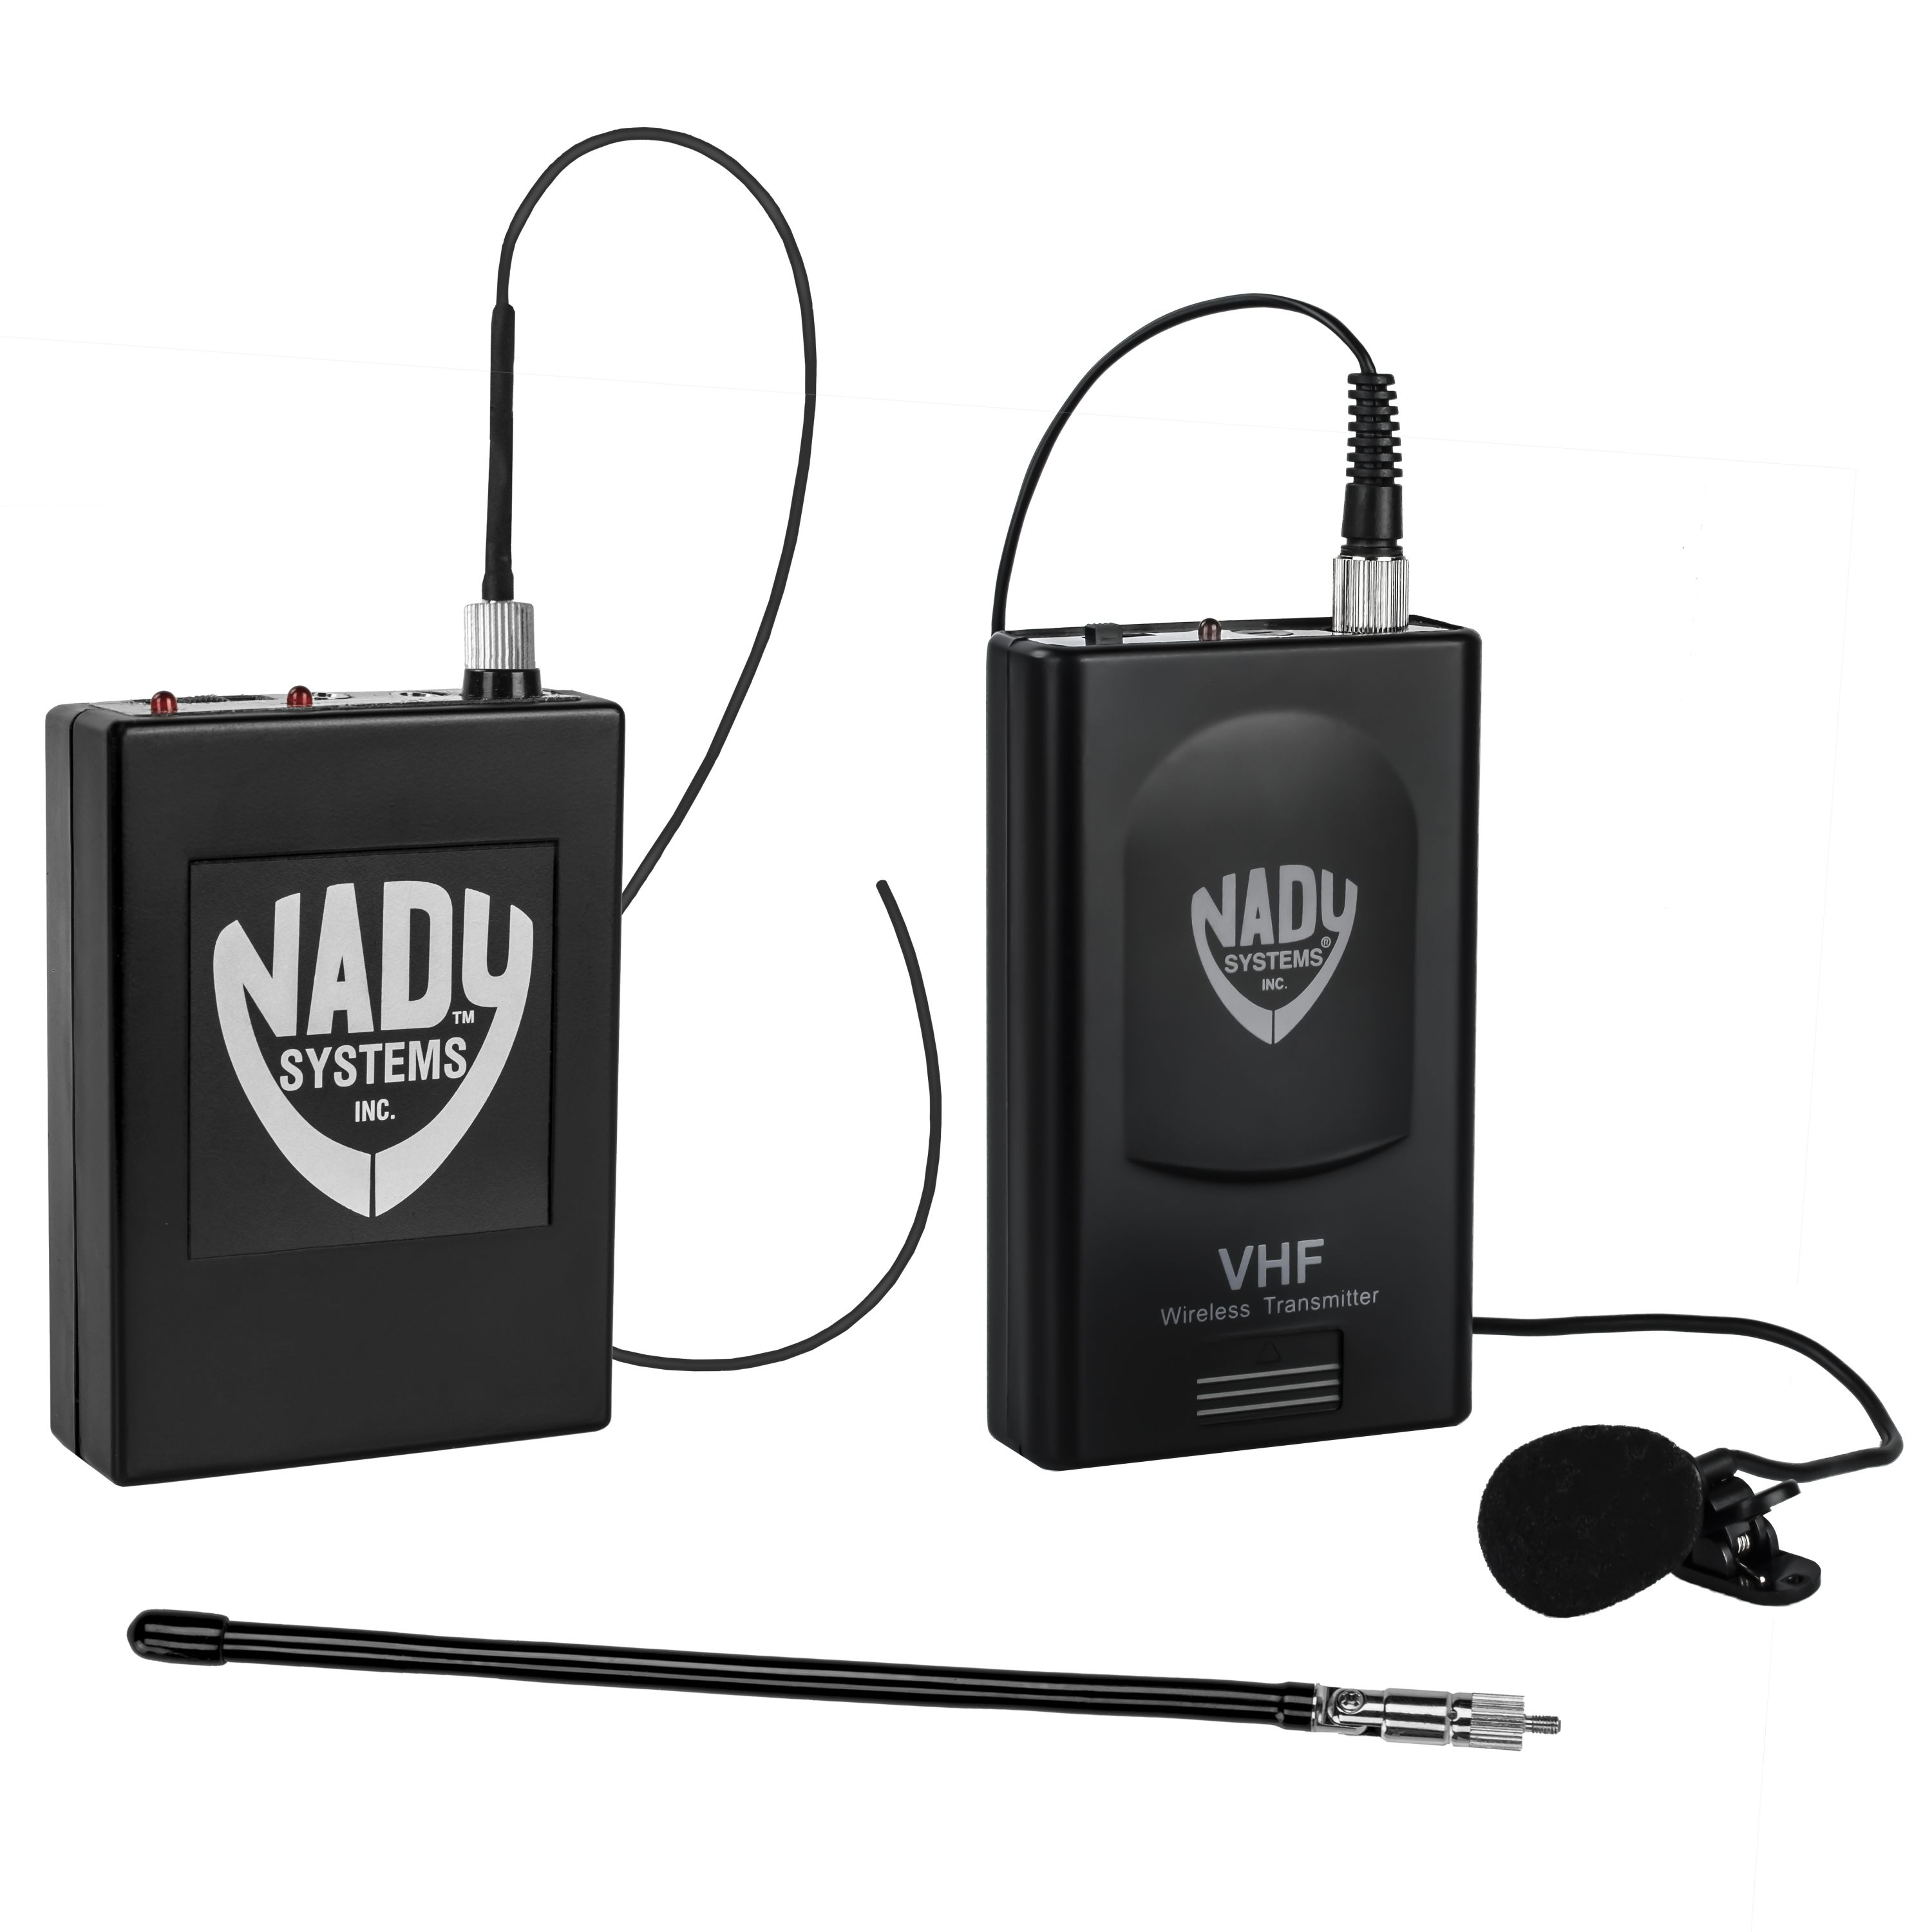 Nady 351 VR LT Professional Wireless DSLR Camera / Video ...